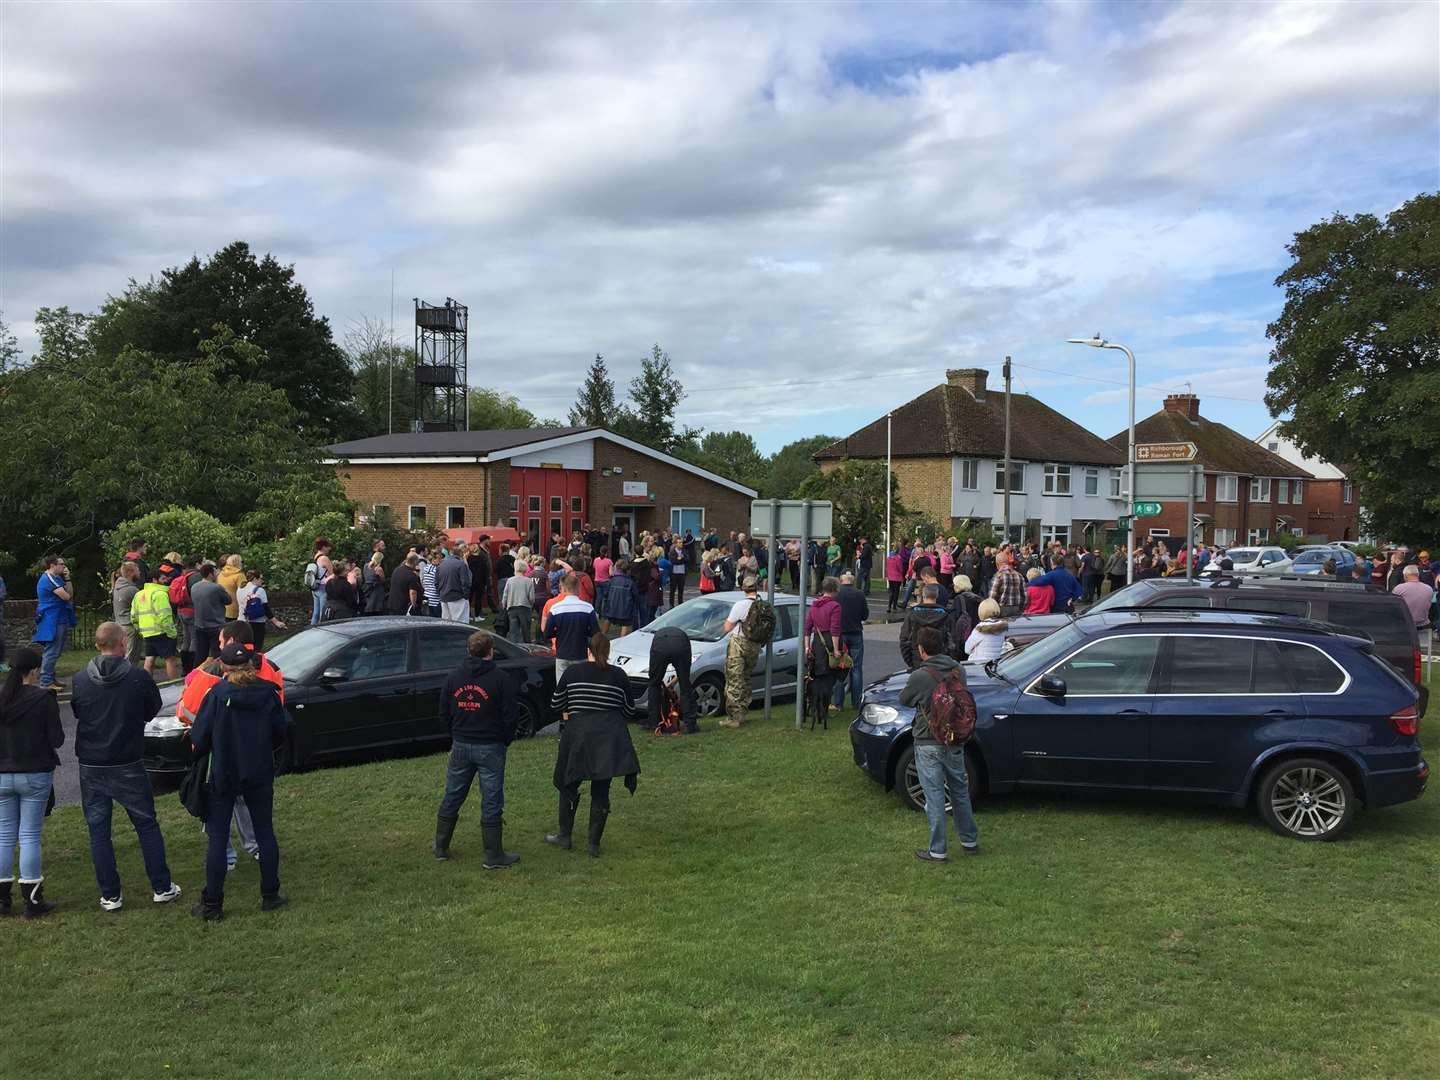 Crowds gather on Sunday morning before the search for Lucas Dobson resumes (15385297)